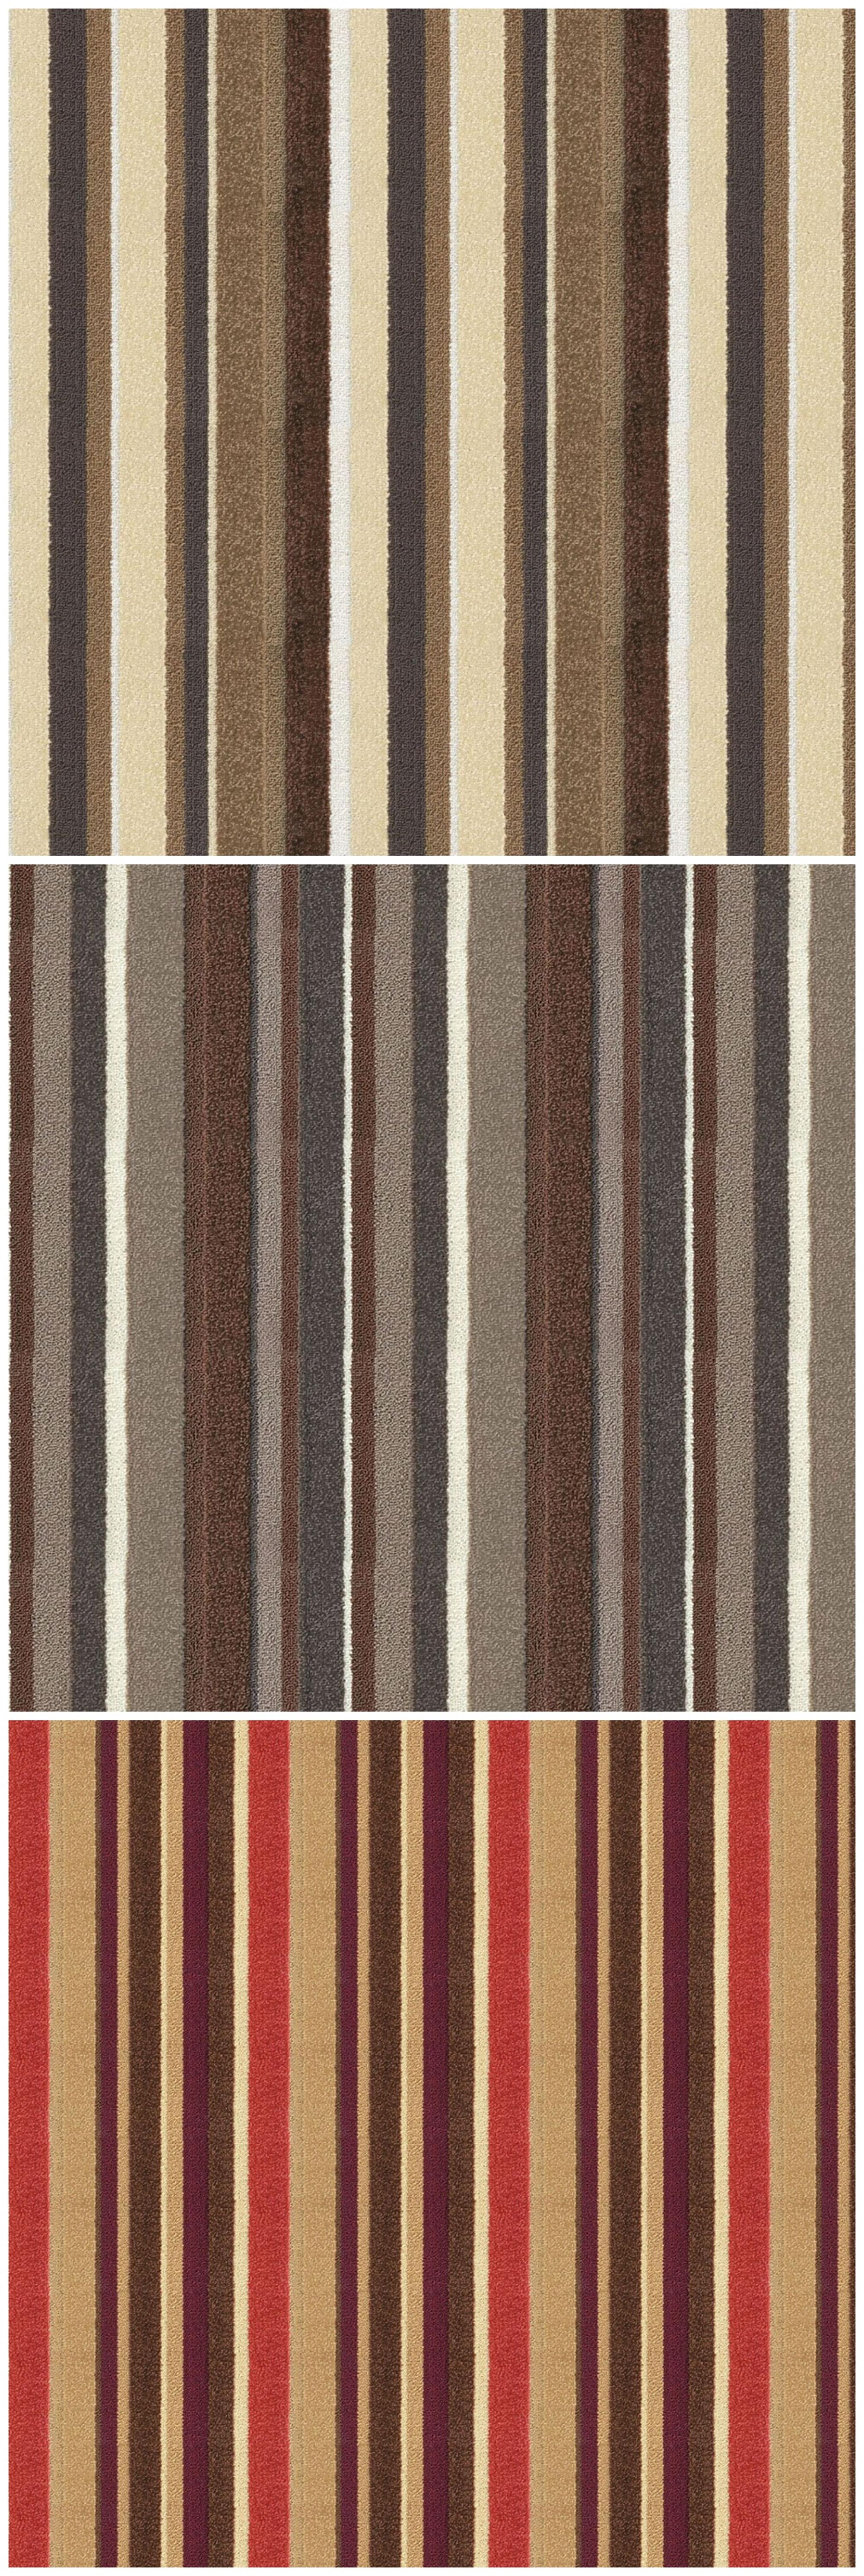 Stripe Pattern Wall To Wall Tufted Carpet For Restaurant, Hotel And Commerical Places In Stock